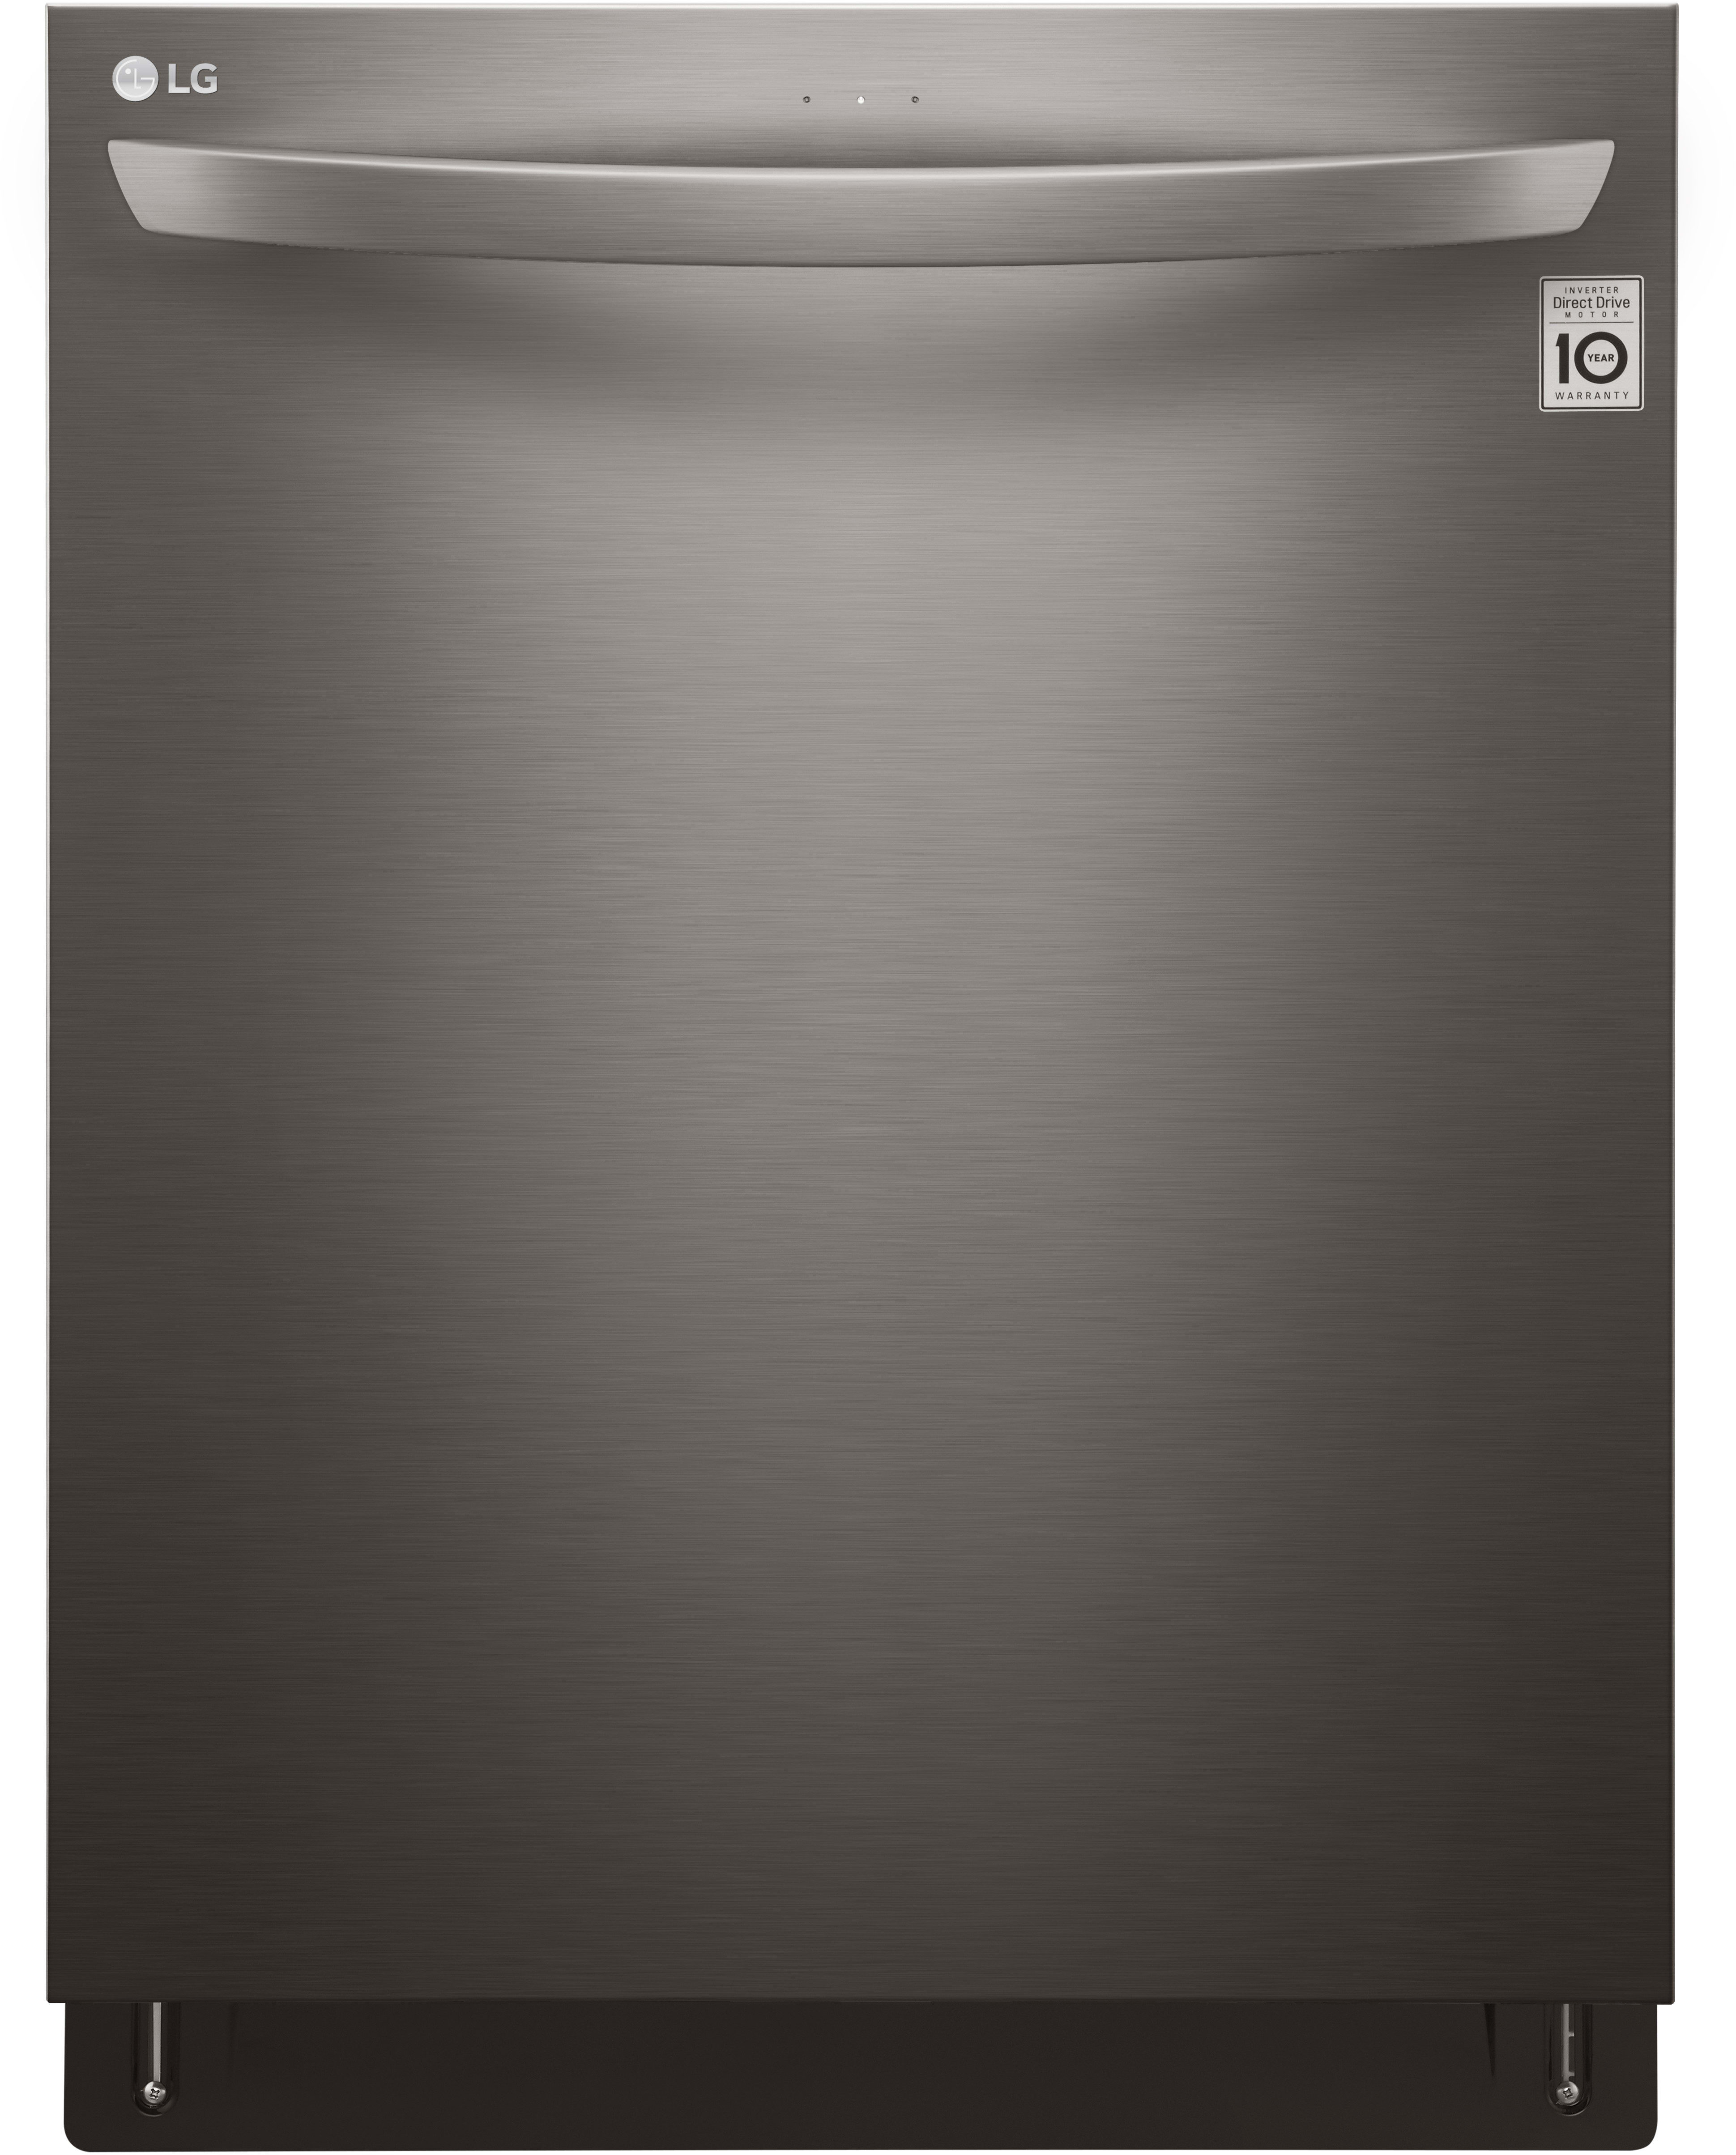 buying this lg consider dishwasher countertop before a photos reviews to buy portable electroluxcomfortliftdishwasherifaphotos how product cnet